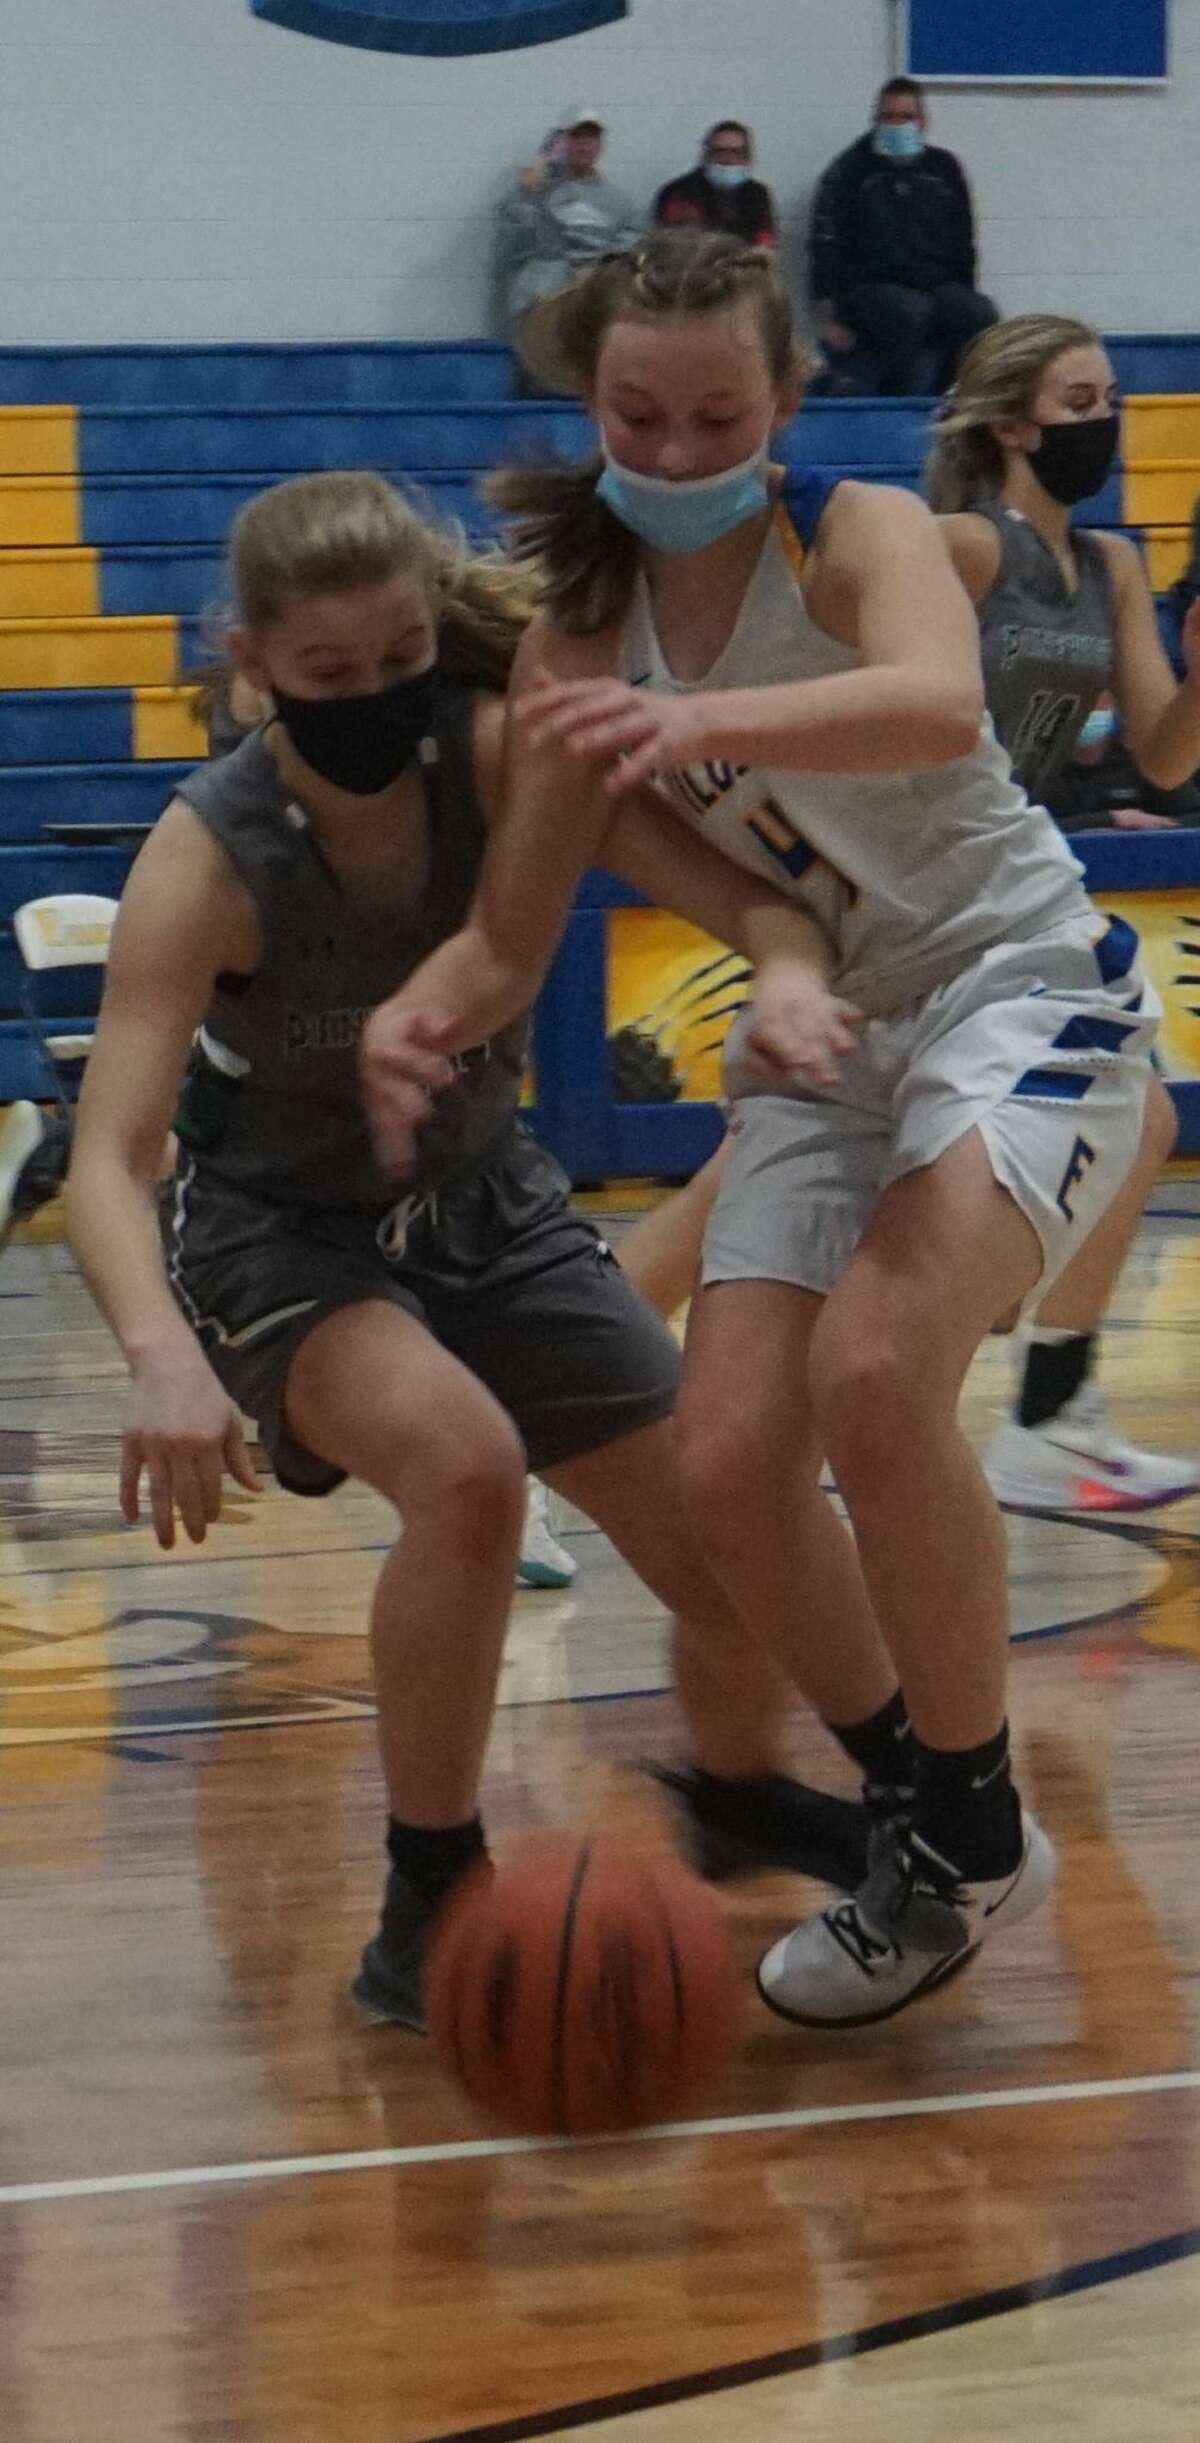 The Evart girls' basketball team defeated Pine River in come-from-behind fashion at home on Friday night.